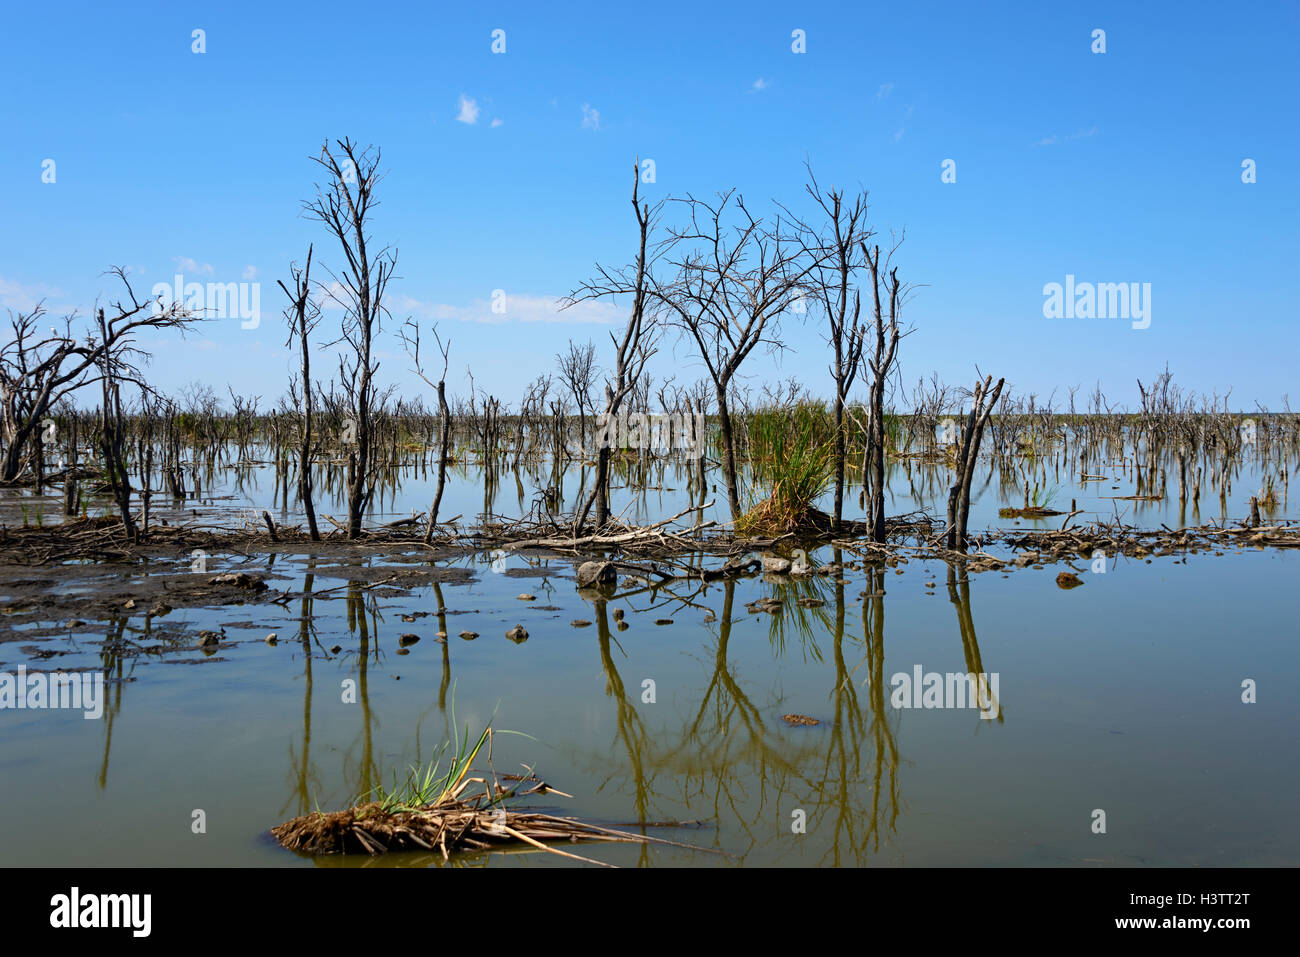 Dead trees in the Lake Ngami, Botswana - Stock Image